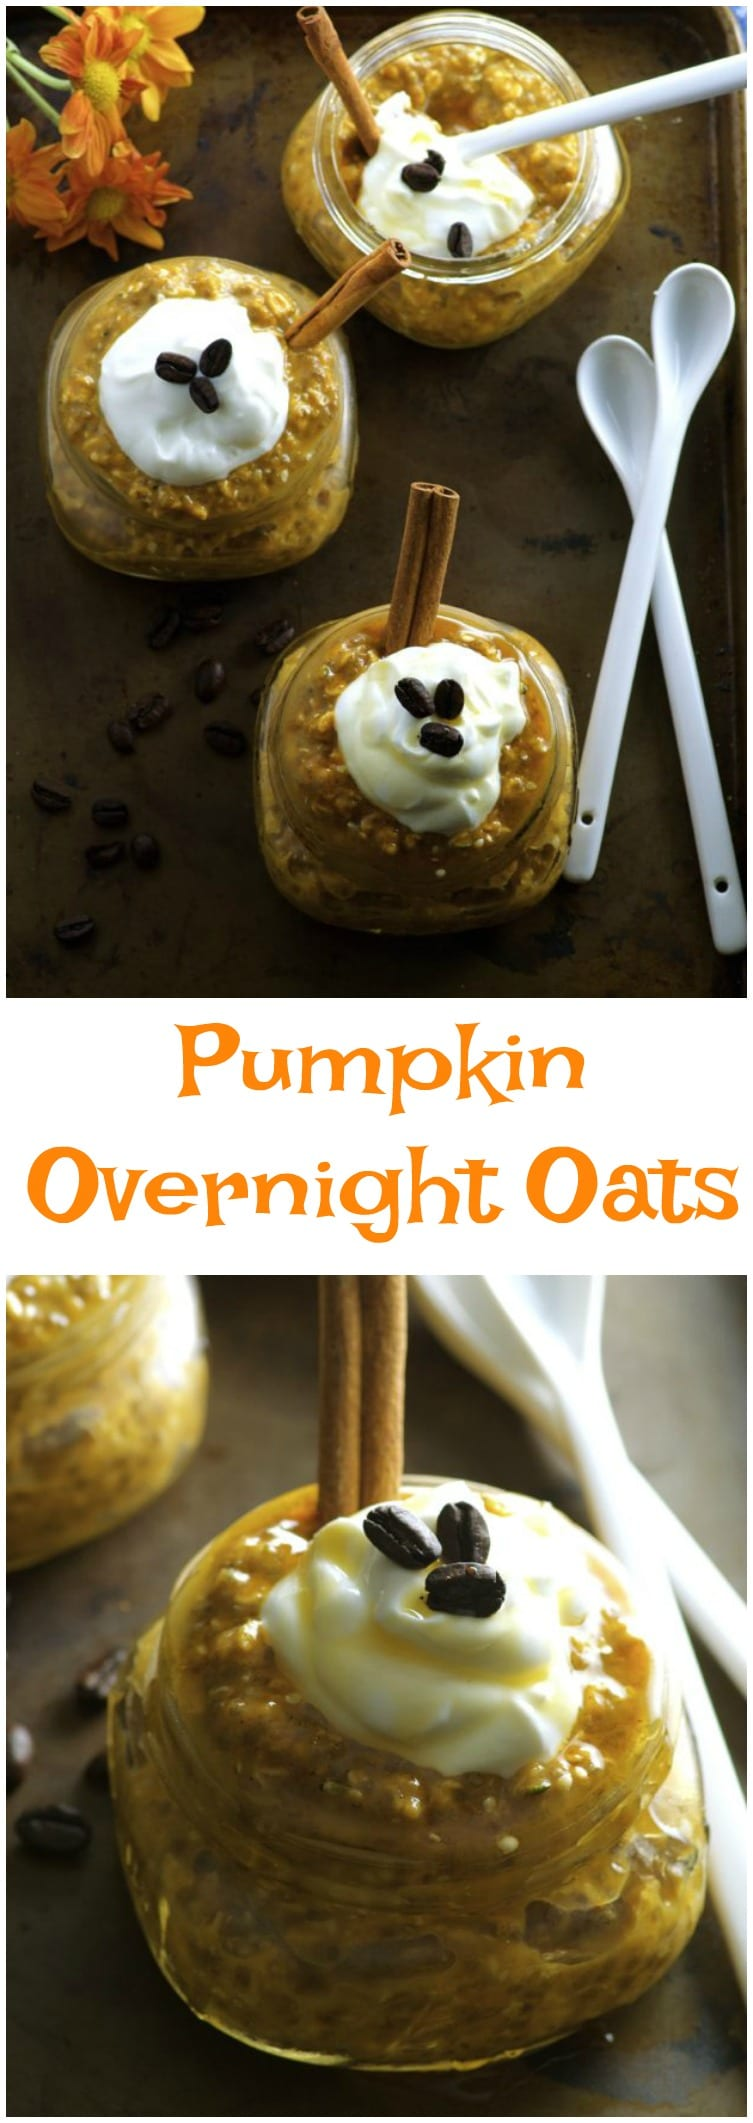 Are you a pumpkin spice lover? Do you also love coffee? Then this breakfast recipe is for you. With these Pumpkin Spice Latte Overnight Oats, you can have your PSL and eat it too!